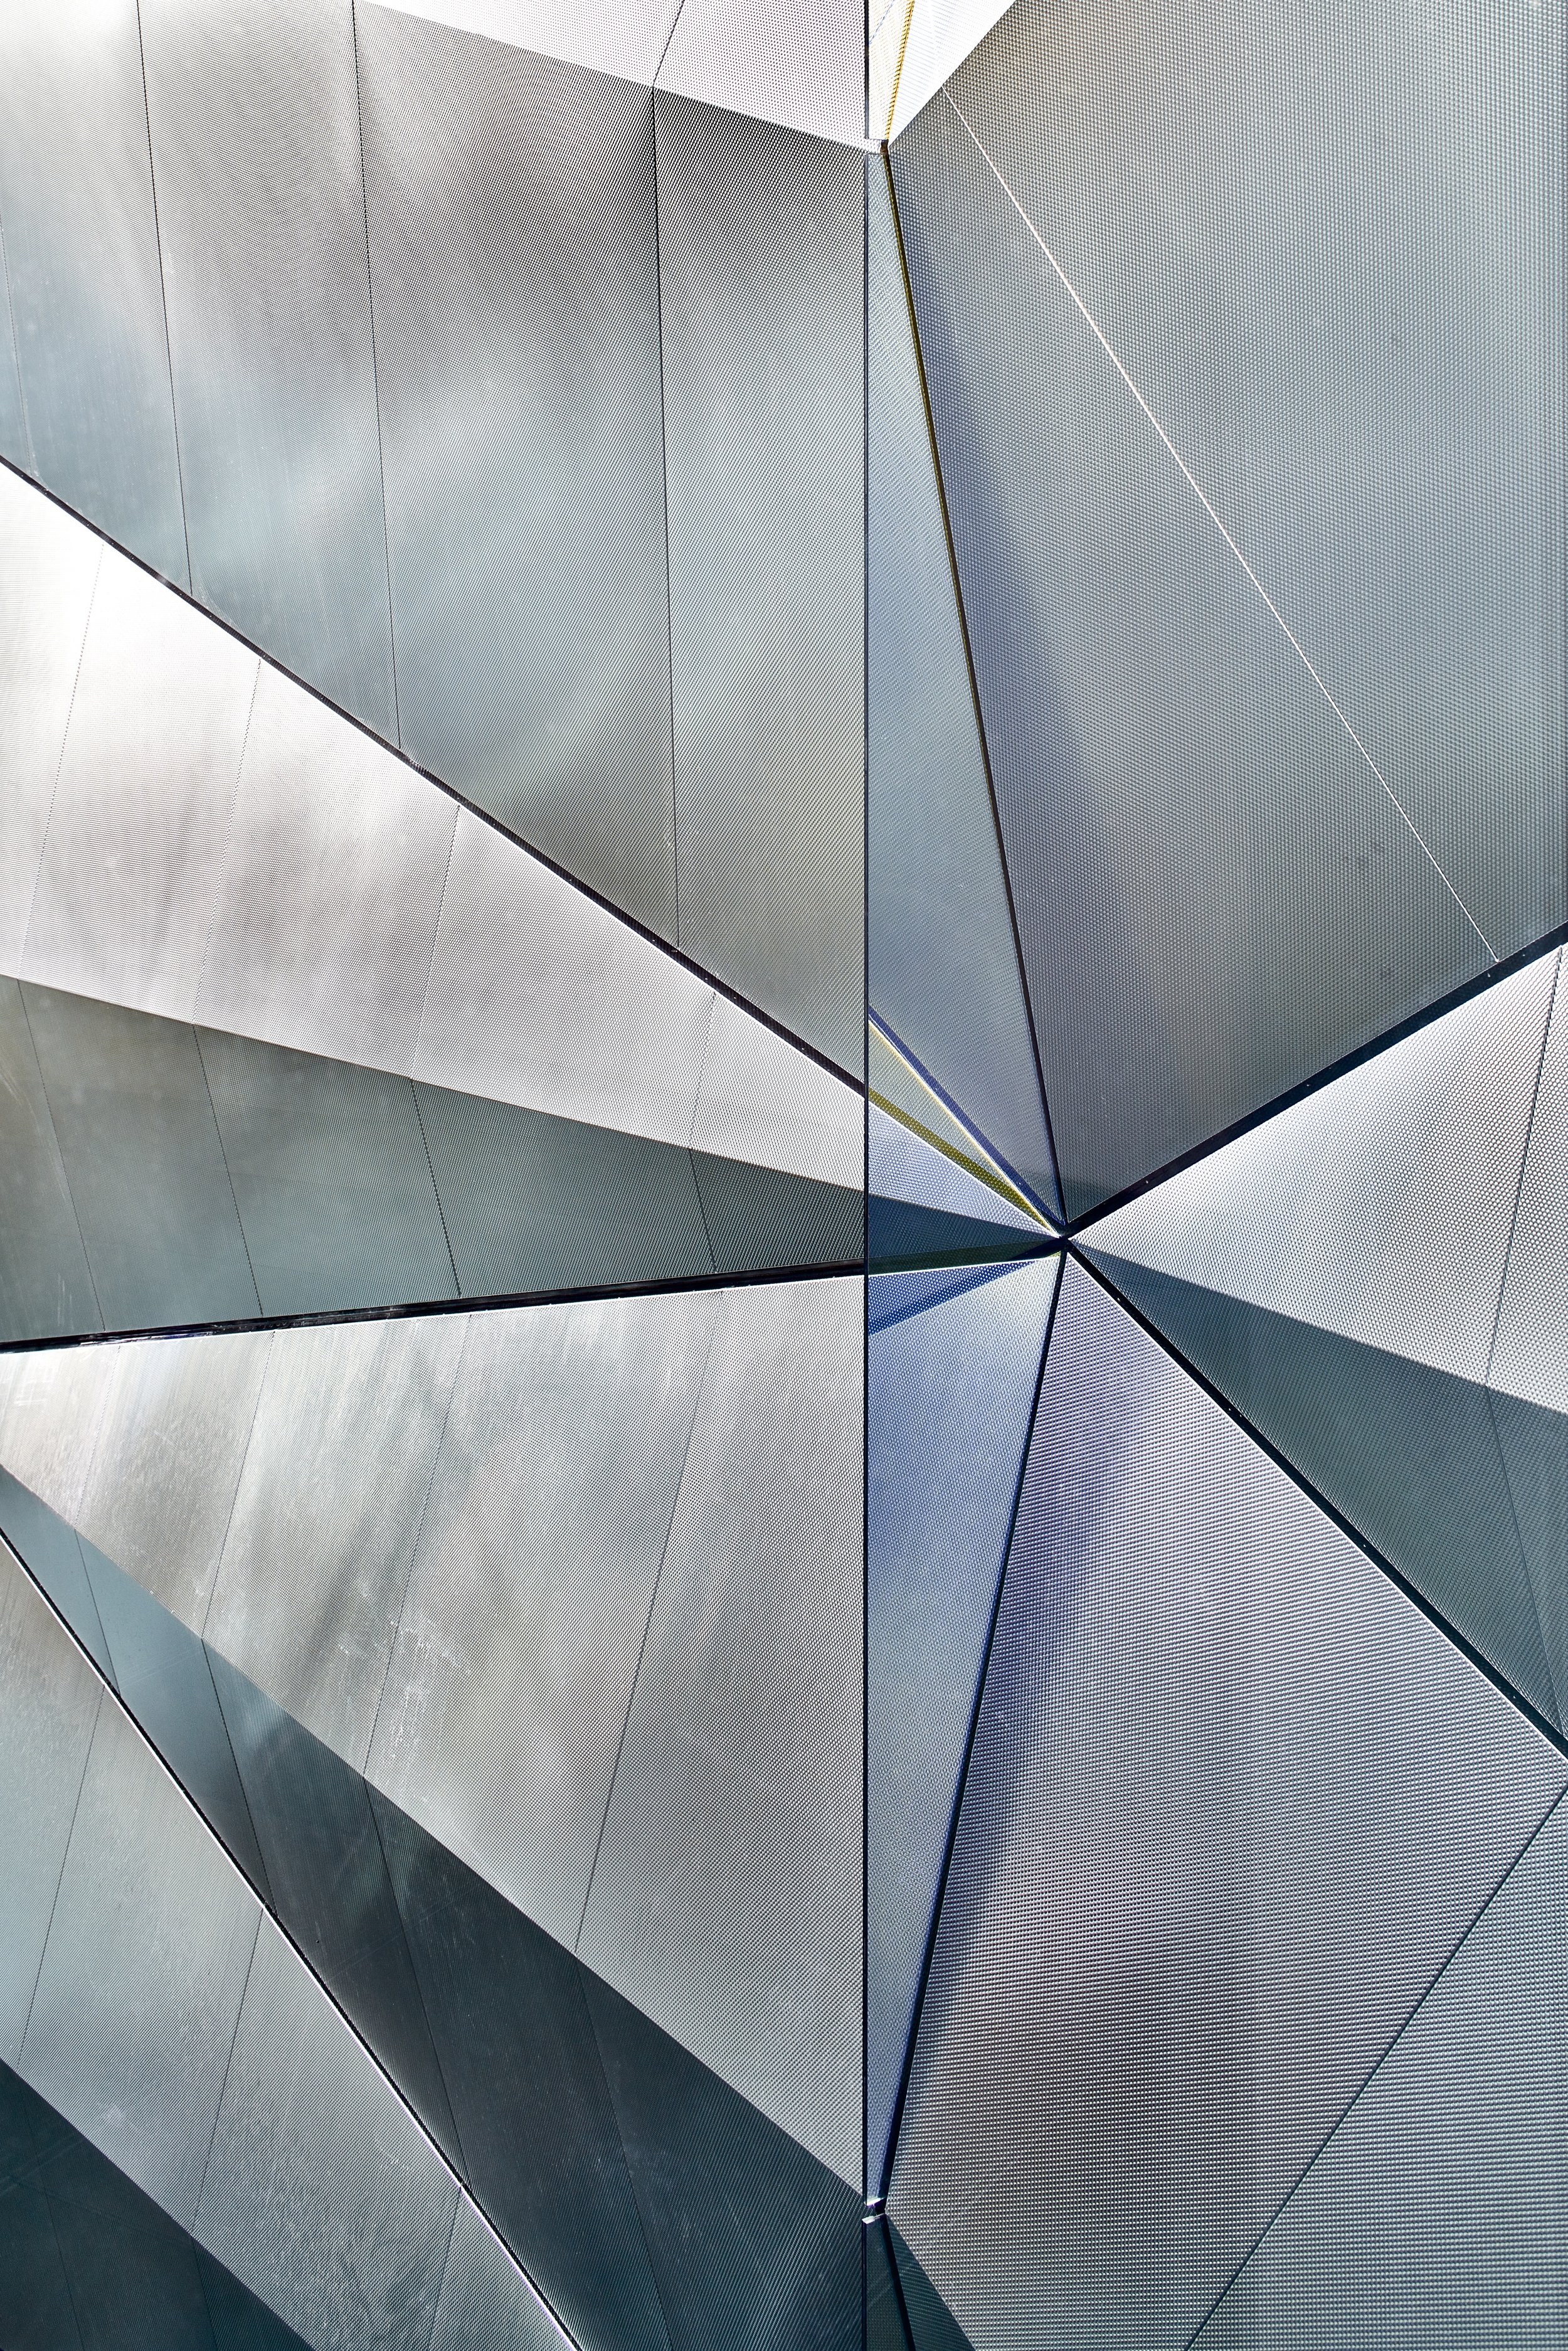 1 A close-up view of the folded semi-reflective surface and the vertical coated glass fin from the seventh floor © Timothy Soar.jpg